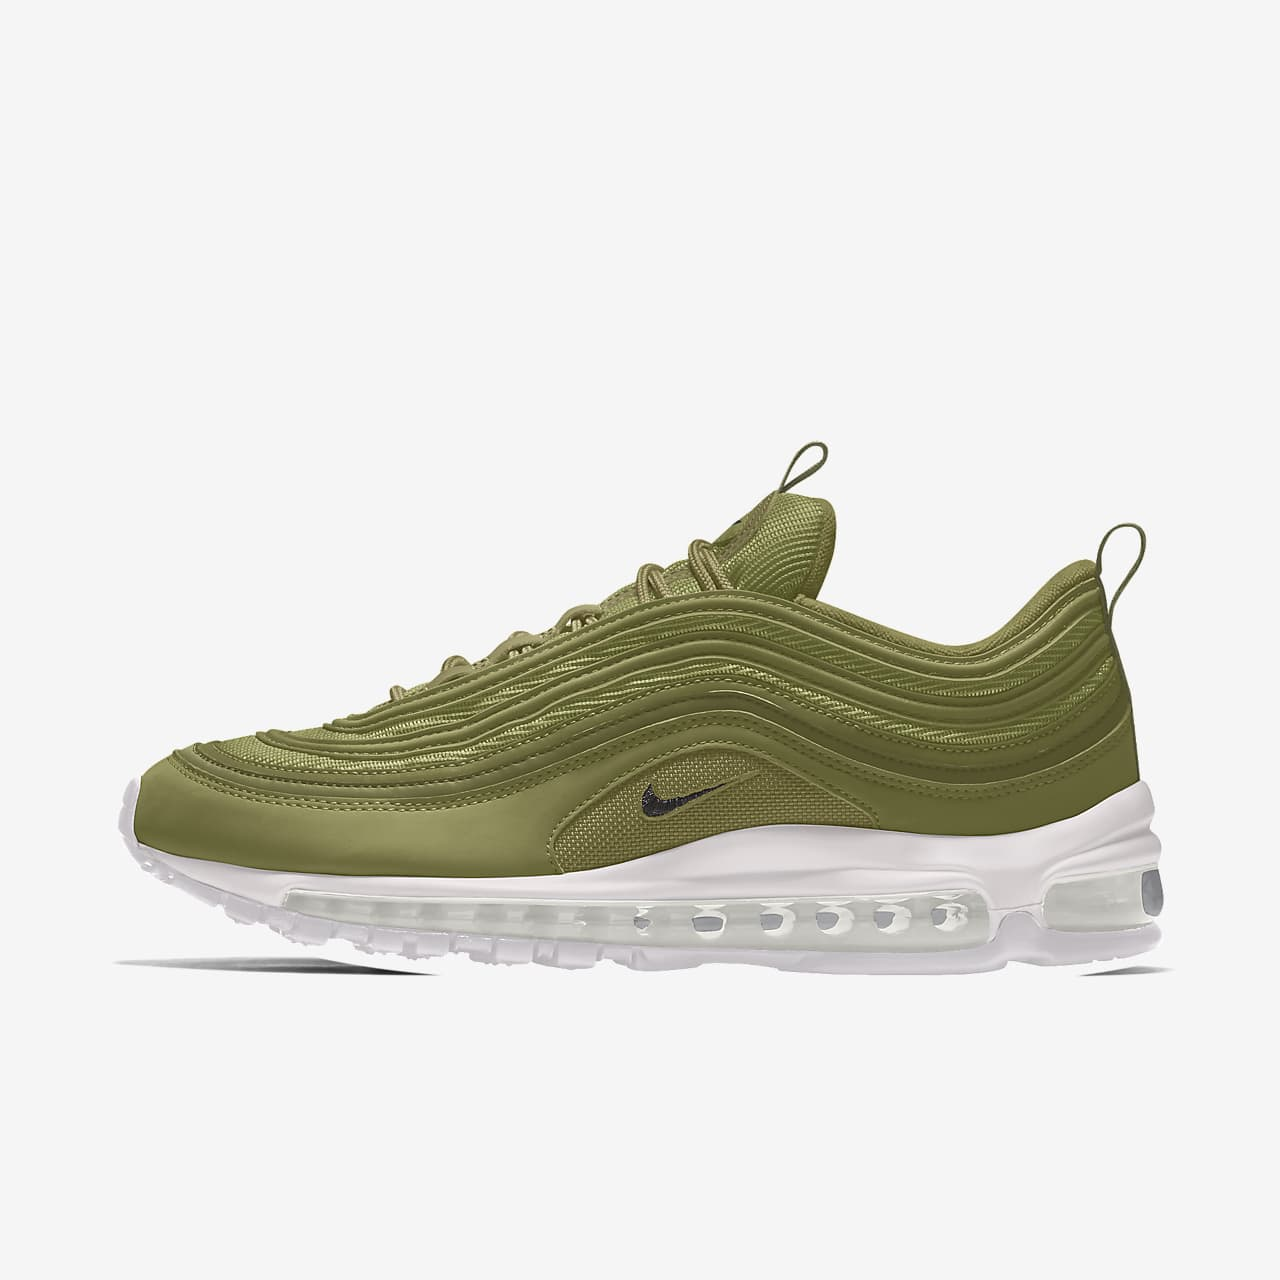 Nike Air Max 97 By You Custom Men's Lifestyle Shoe